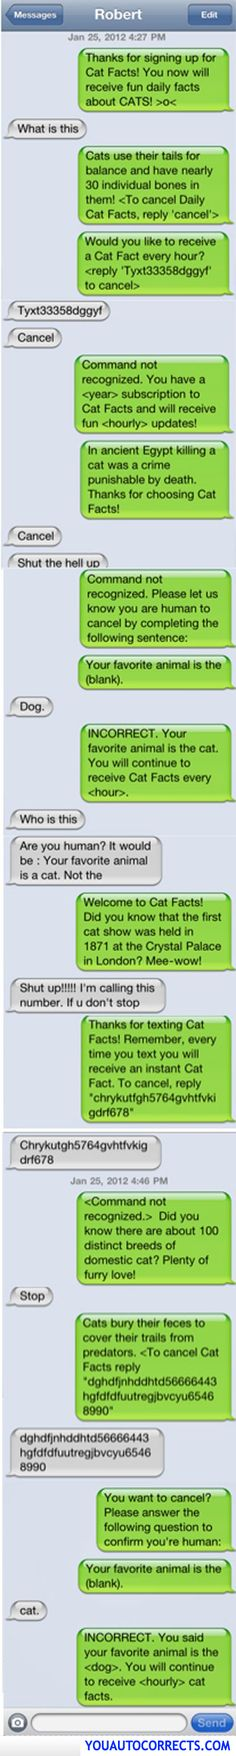 Now This Is How You Troll Someone Properly! | You Auto Correct!